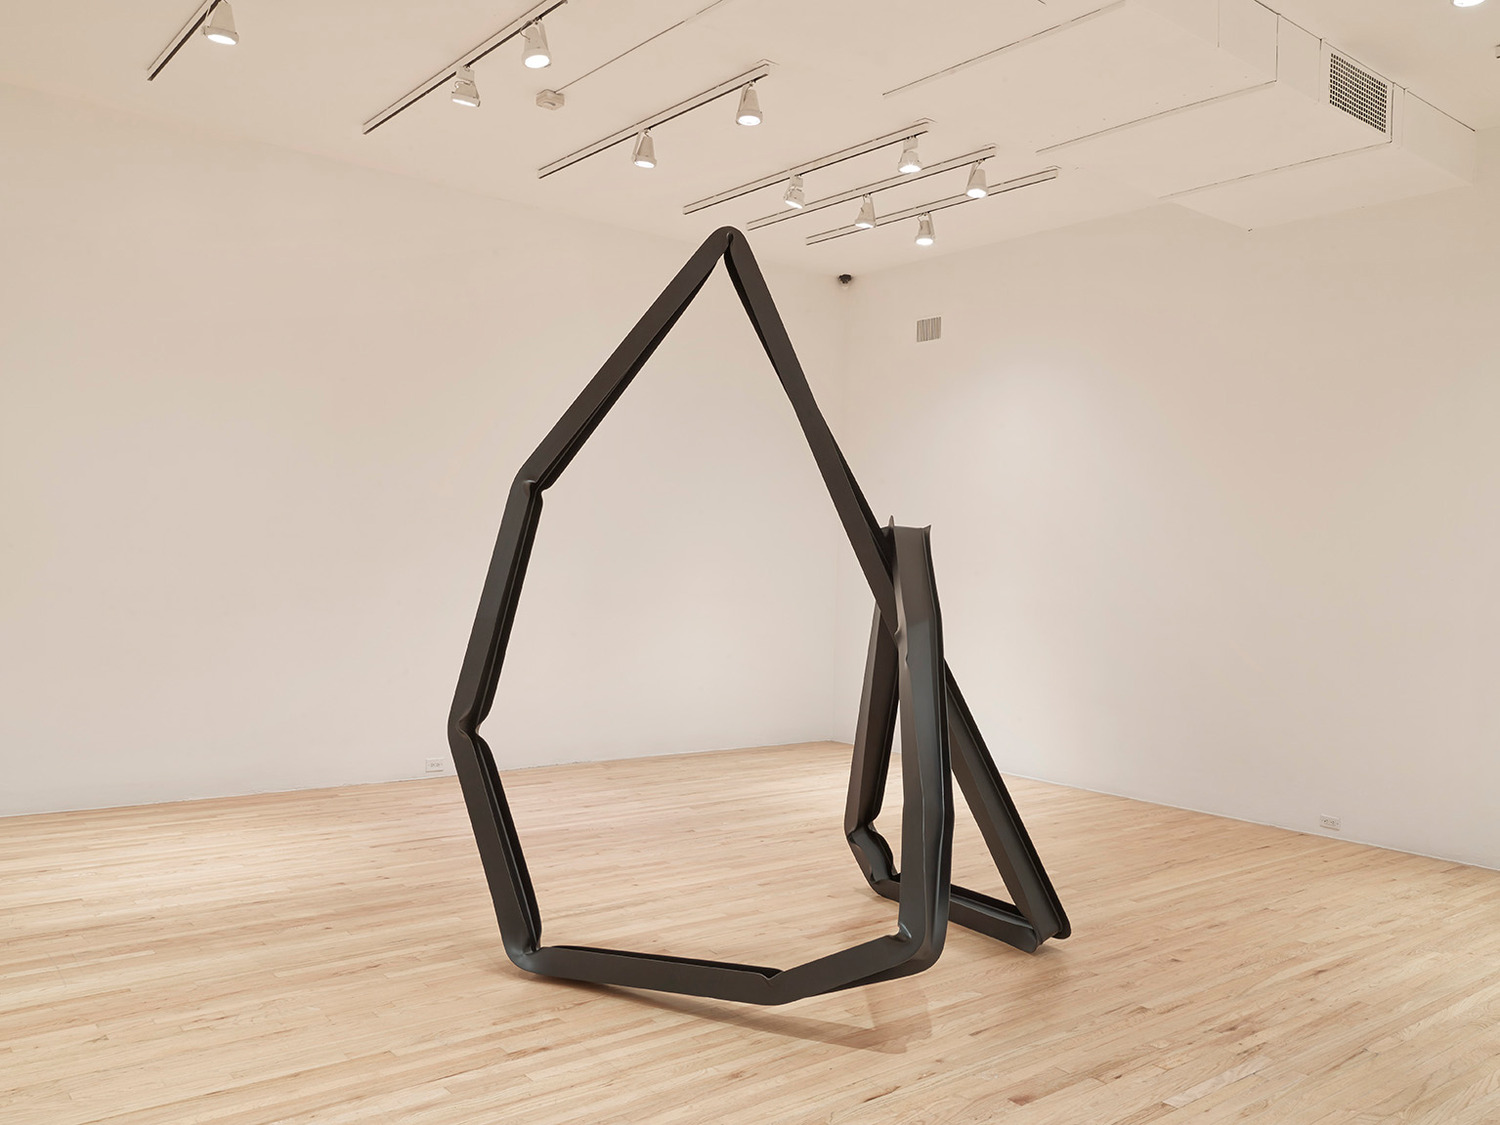 Monika Sosnowska, I Profile, 2013, Painted steel, 316 x 240 x 270 cm, Installation view, Aspen Art Museum, Aspen, 2013